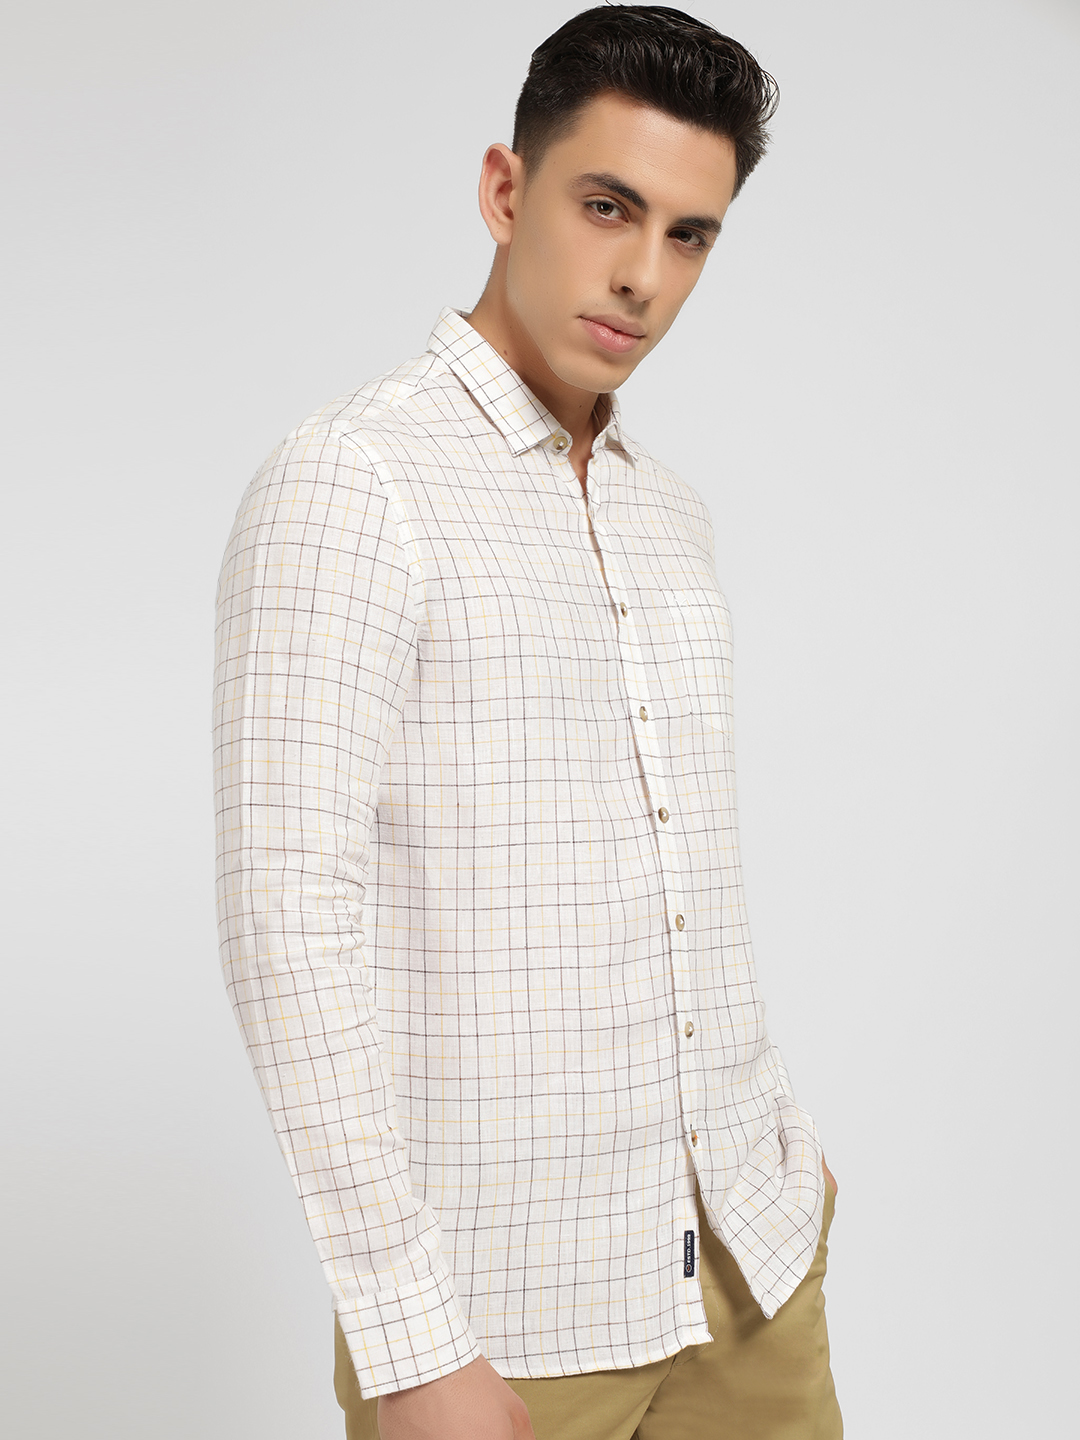 SCULLERS White Grid Check Slim Shirt 1